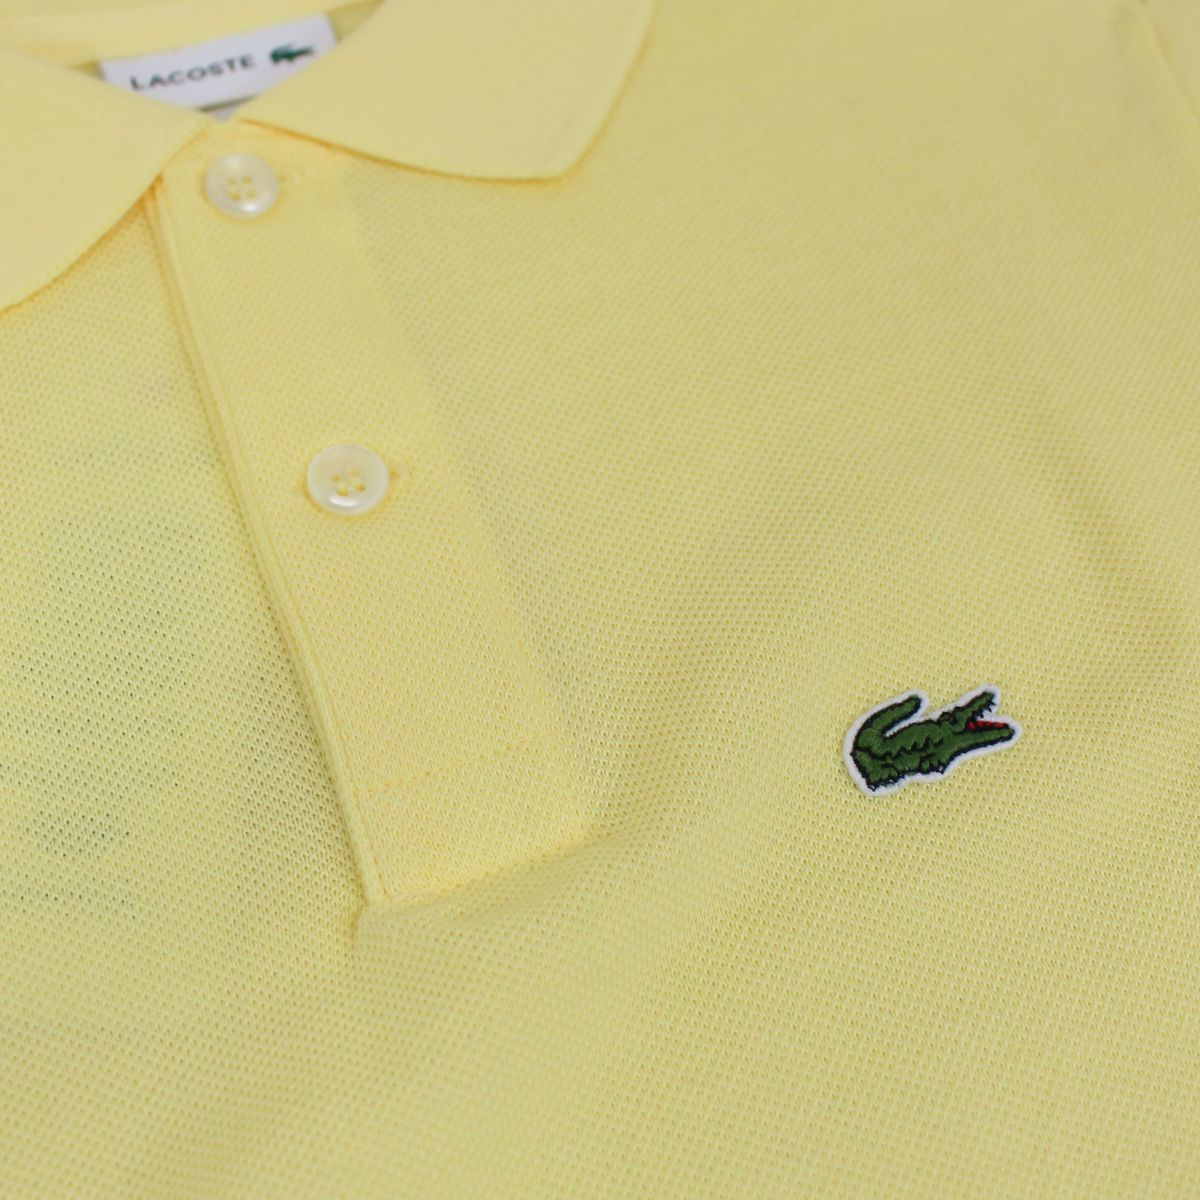 2 button cotton polo shirt Yellow Lacoste